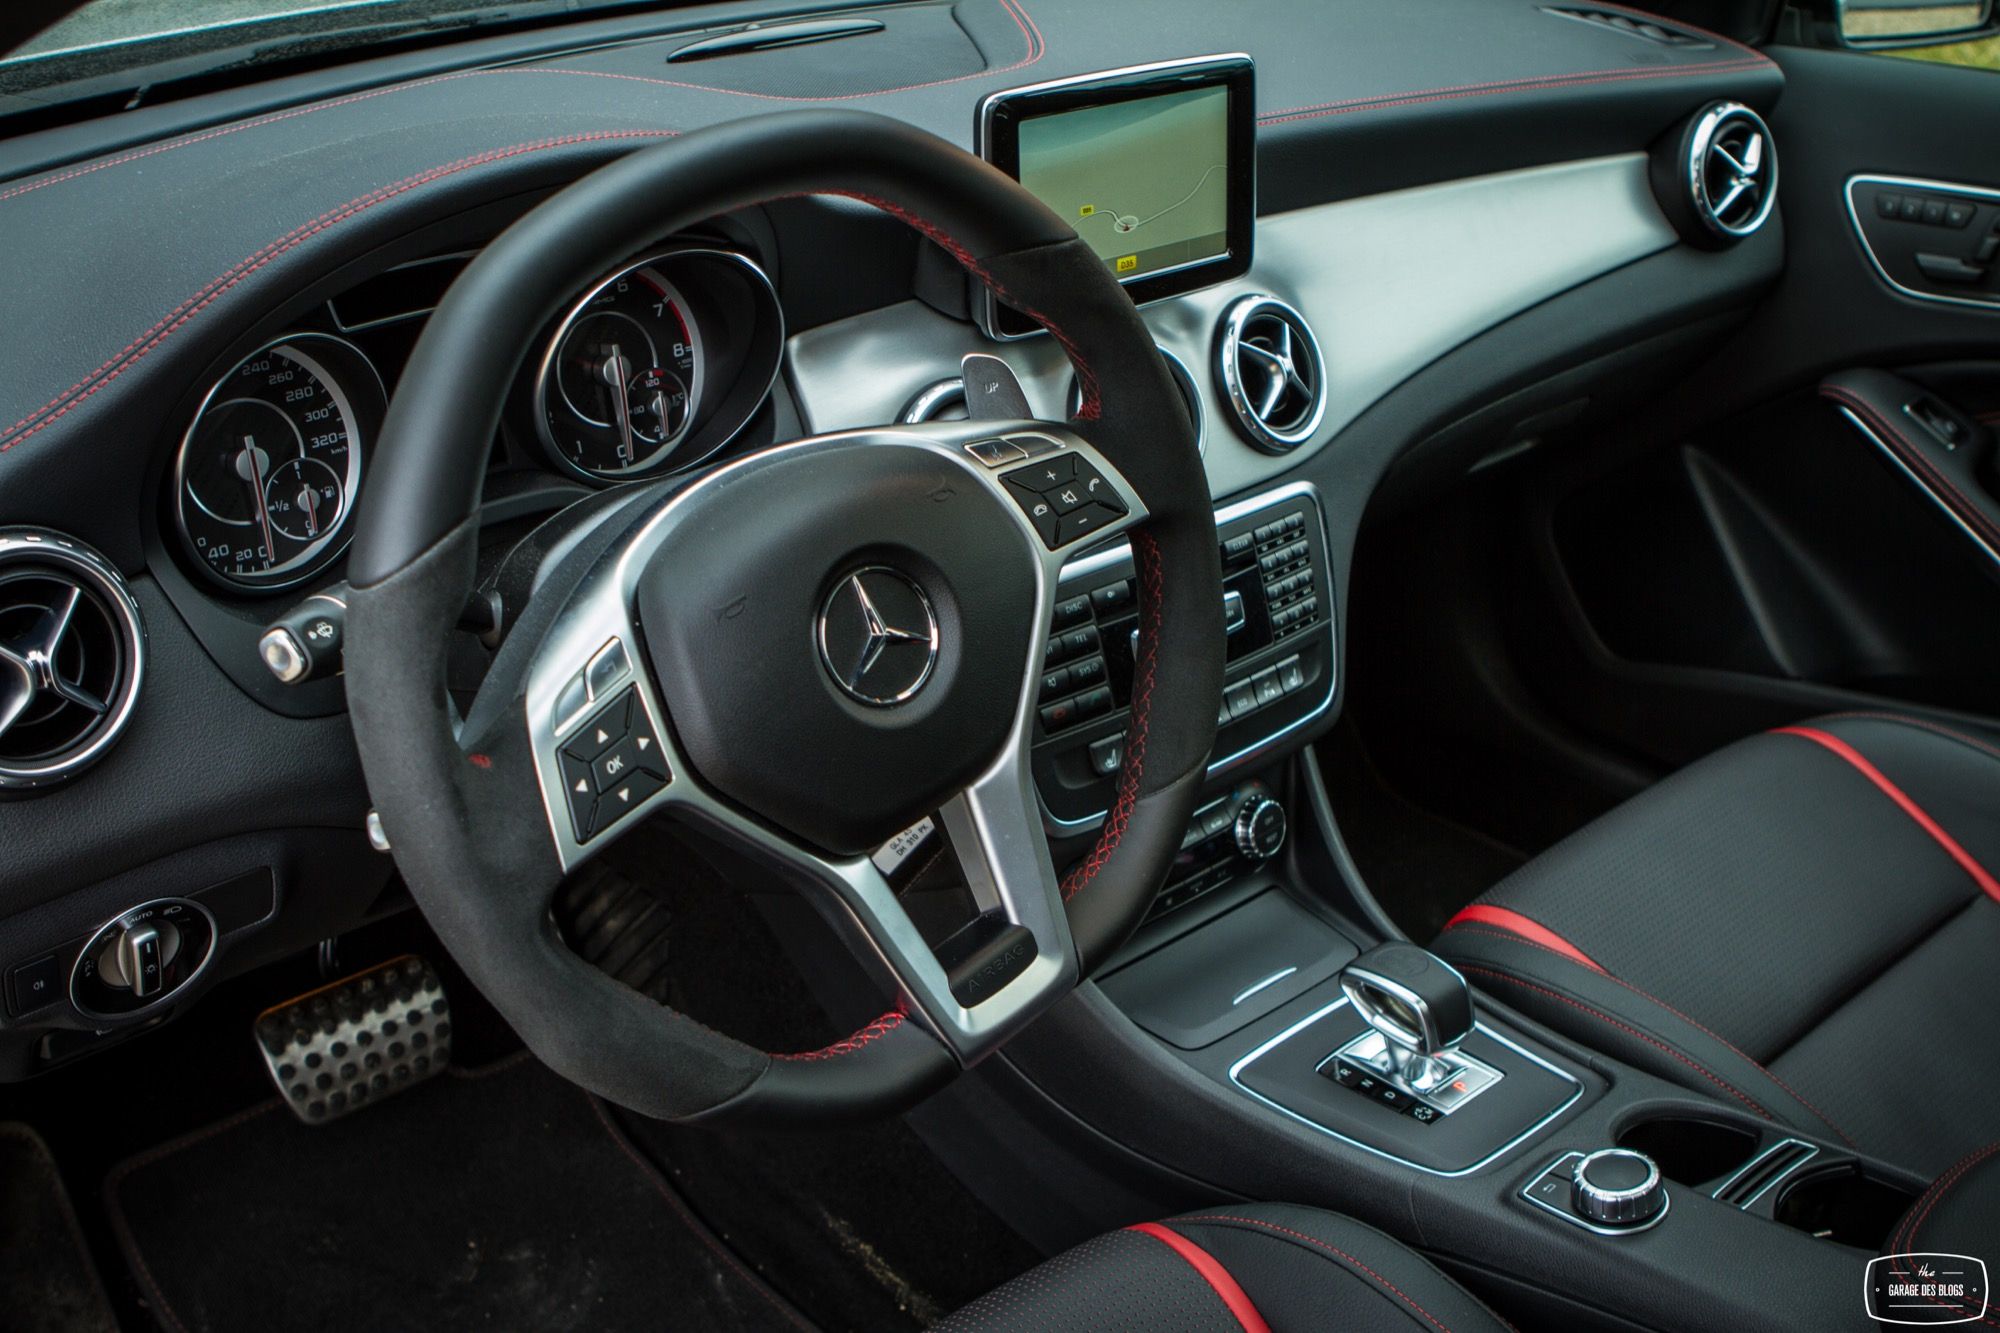 essai mercedes amg gla 45 4matic interieur 1 le blog de viinz. Black Bedroom Furniture Sets. Home Design Ideas